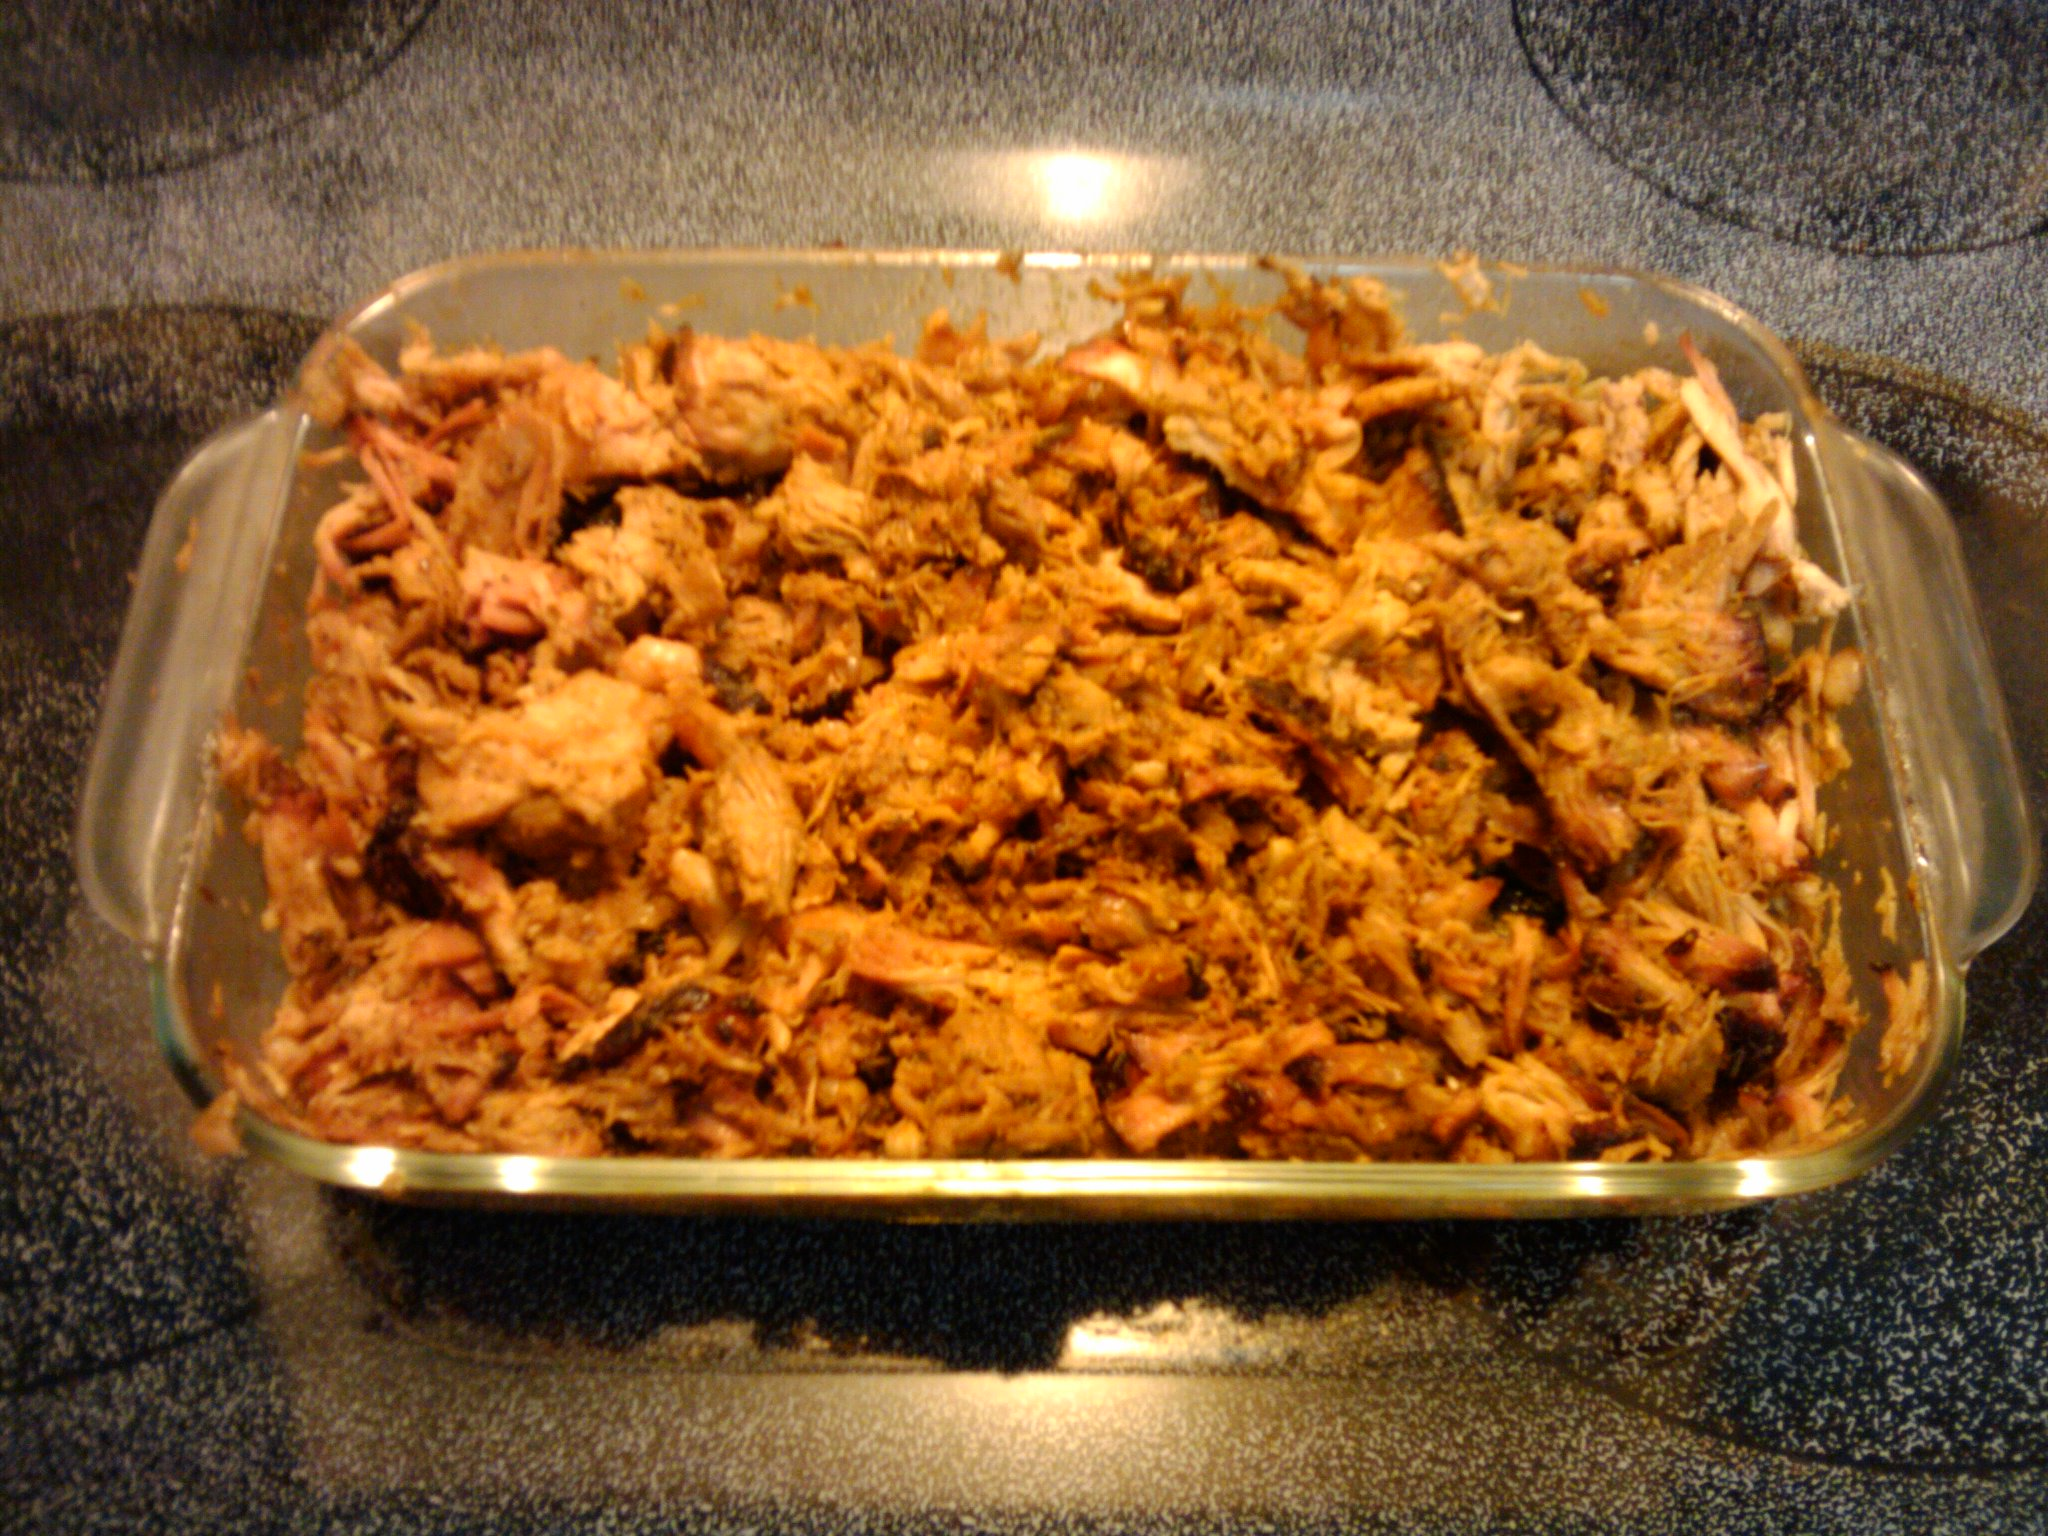 Orlando, FL :: 1st attempt at pulled pork. 9 hours on the grill. Done at 3 am. Made my own rub and sauce.It tastes awesome!Glad I did IT!